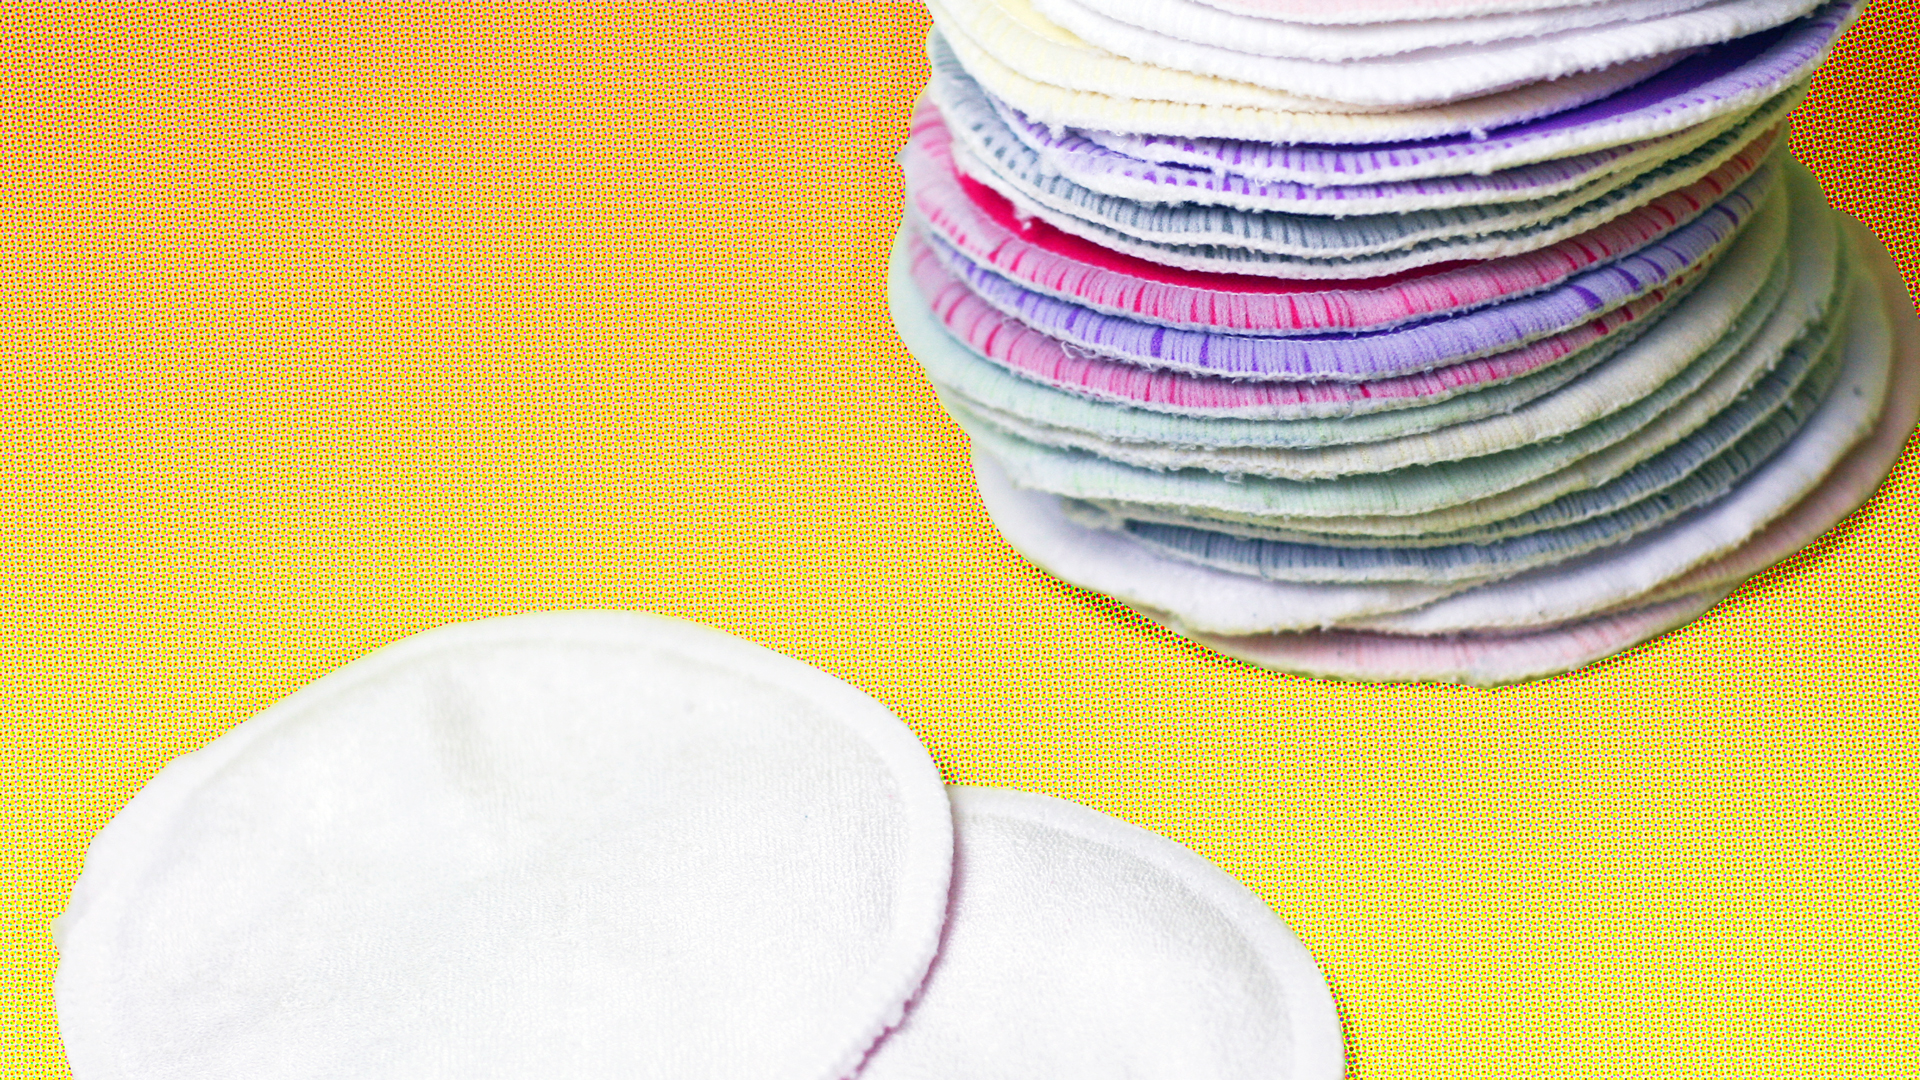 The Best Reusable Nursing Pads for Your Wallet and the Planet